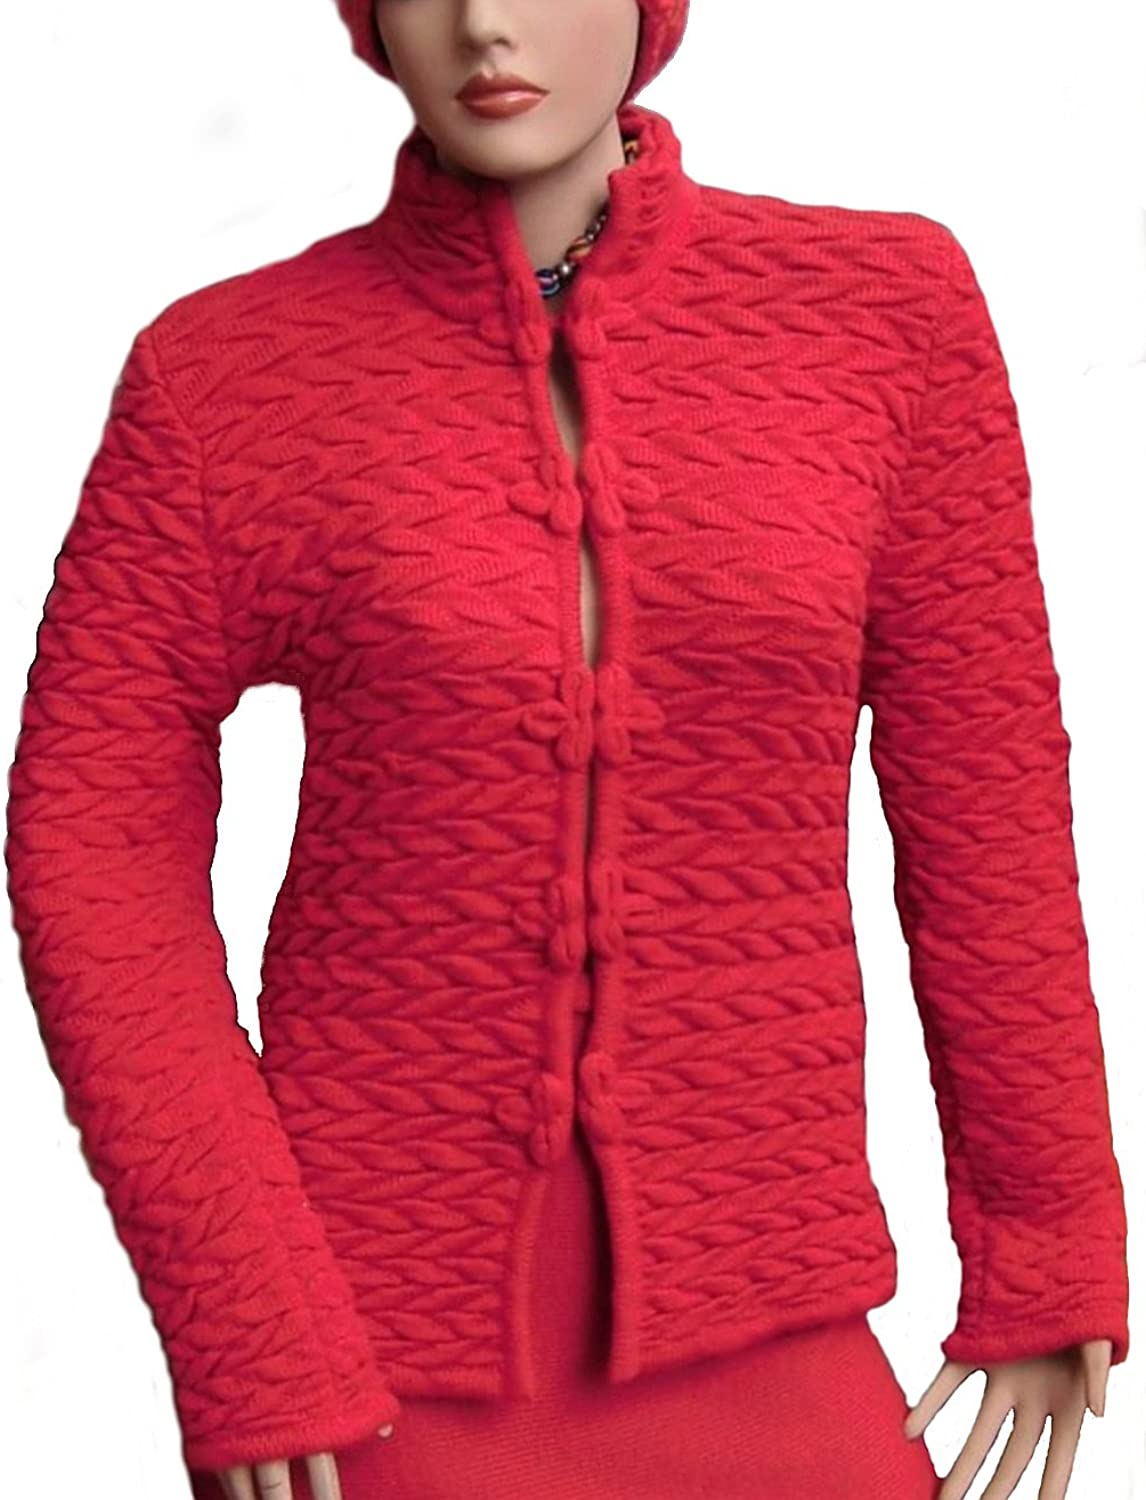 Alpakaandmore Women Cardigan Leaves Design Alpaca Wool Jacket Red